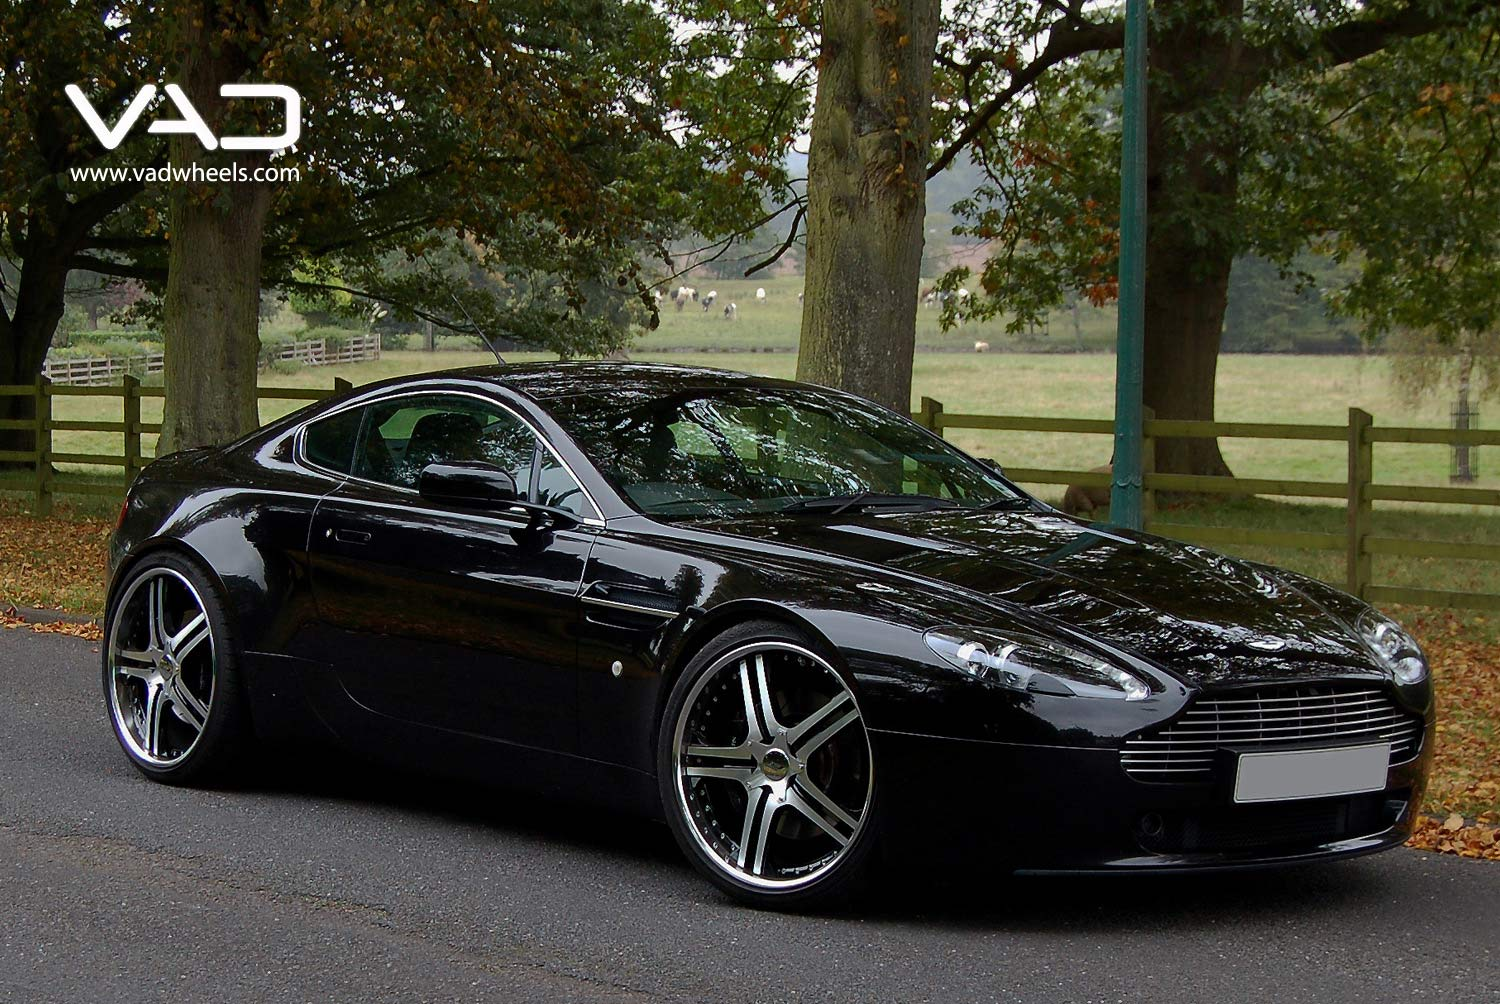 Aston-Martin-AMV8-Fitted-With-21''-Altstadt-S250--Black-&-Polished